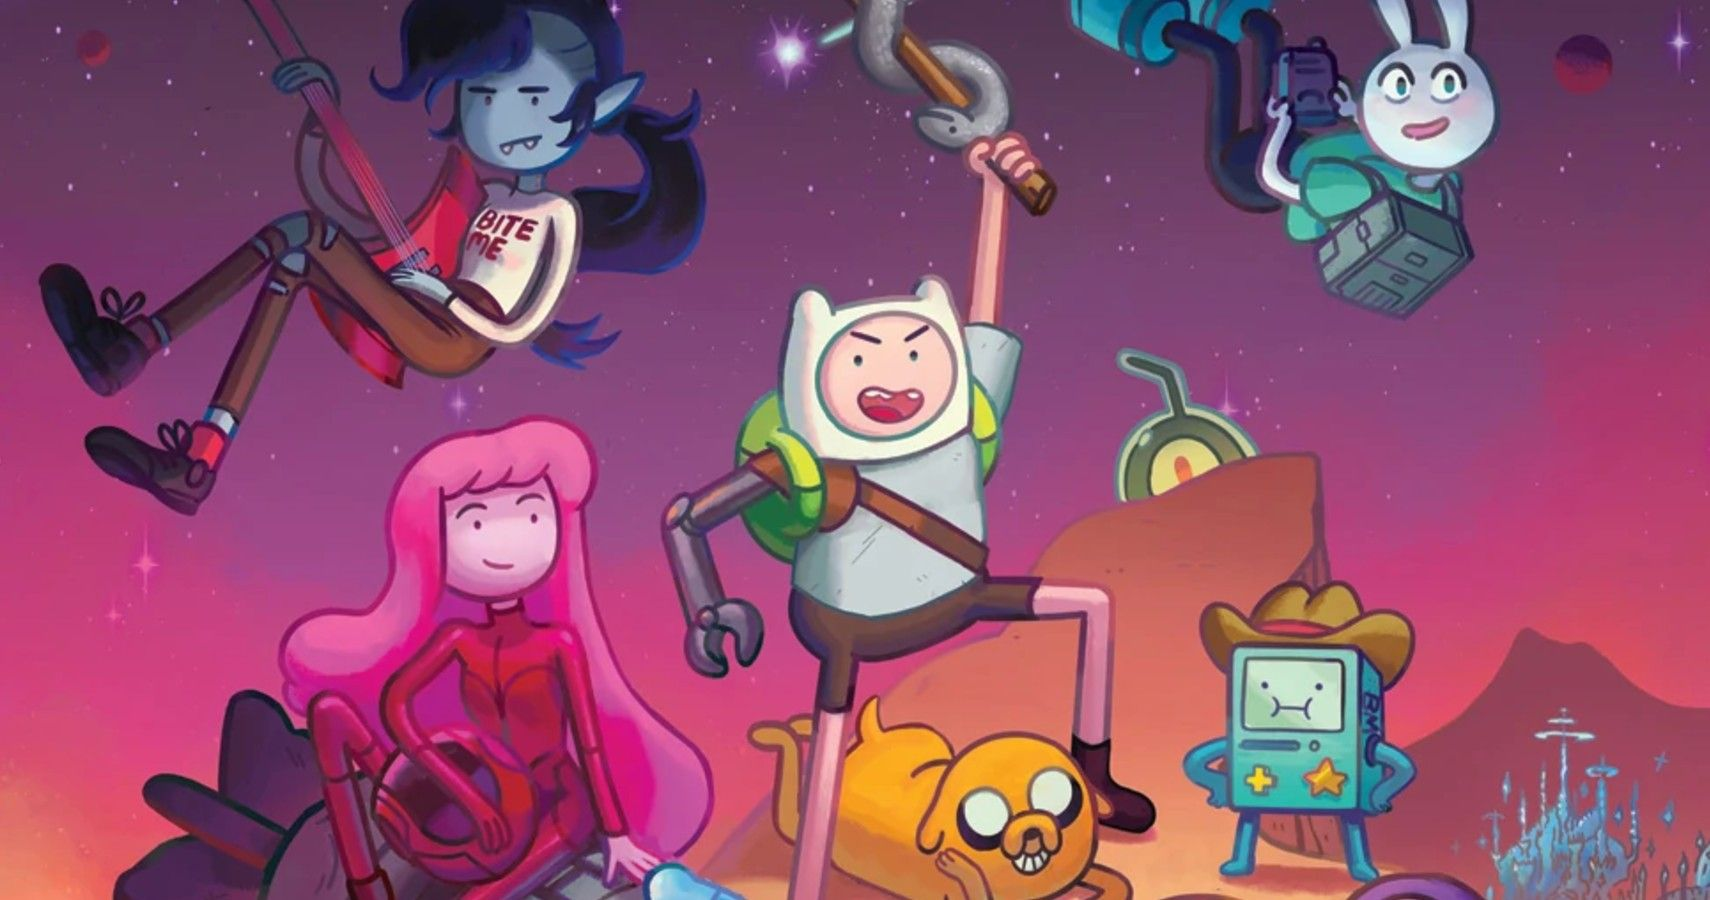 Adventure Time: Distant Lands - 10 Burning Questions That The Upcoming Follow-Up Could Finally